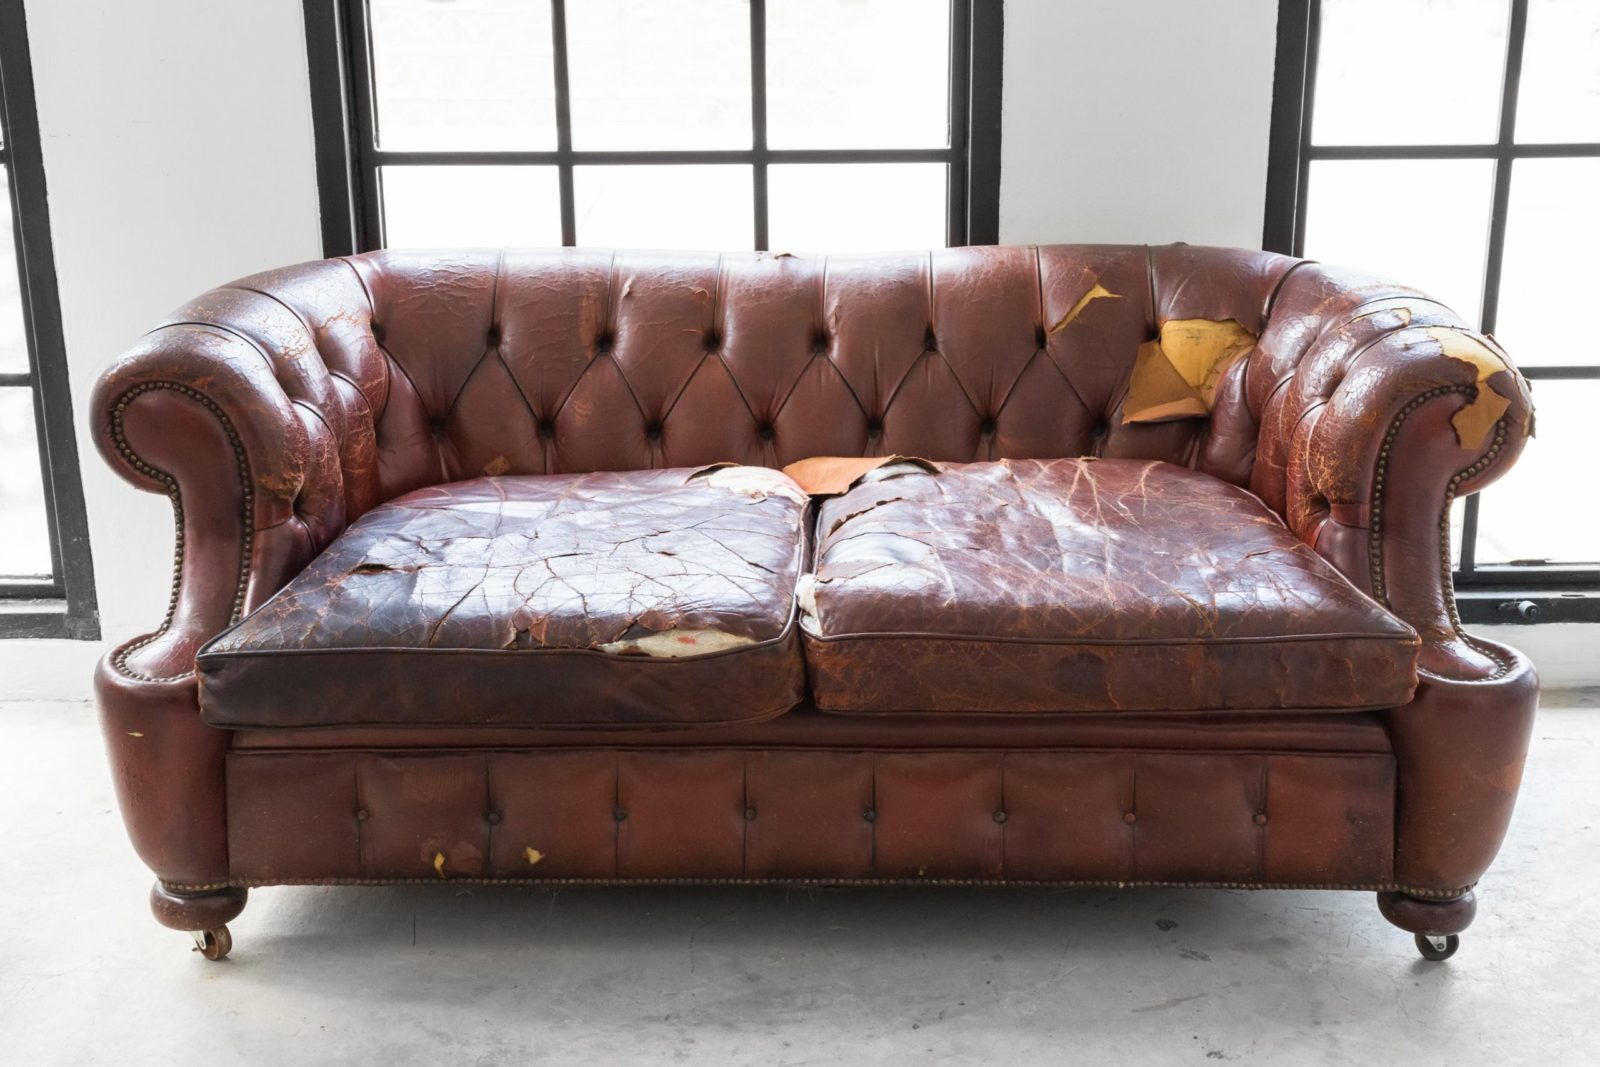 Old leather couch in need of furniture removal services